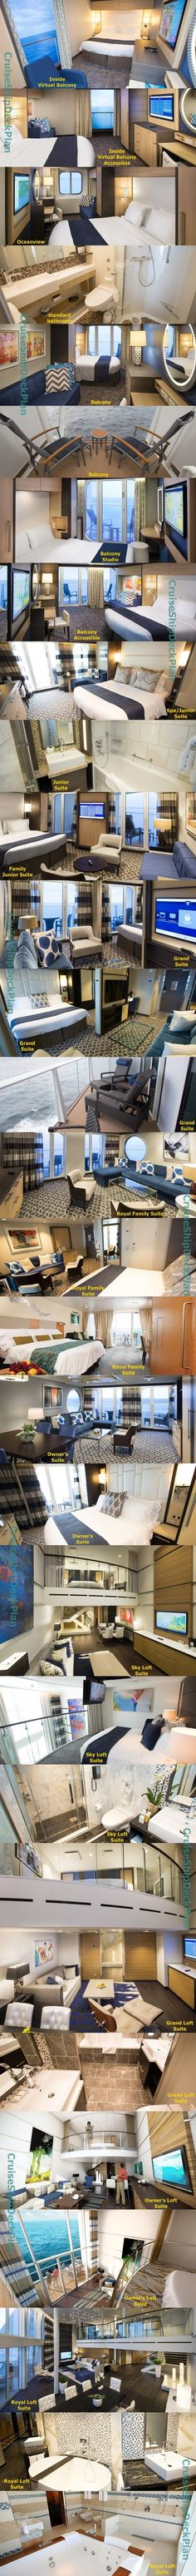 Royal Caribbean Ovation of the Seas cabins and suites photos. To the last rooms! Cruise Excursions, Cruise Travel, Cruise Vacation, Family Cruise, Family Travel, Cruise Tips Royal Caribbean, Rhapsody Of The Seas, Empress Of The Seas, S Videos